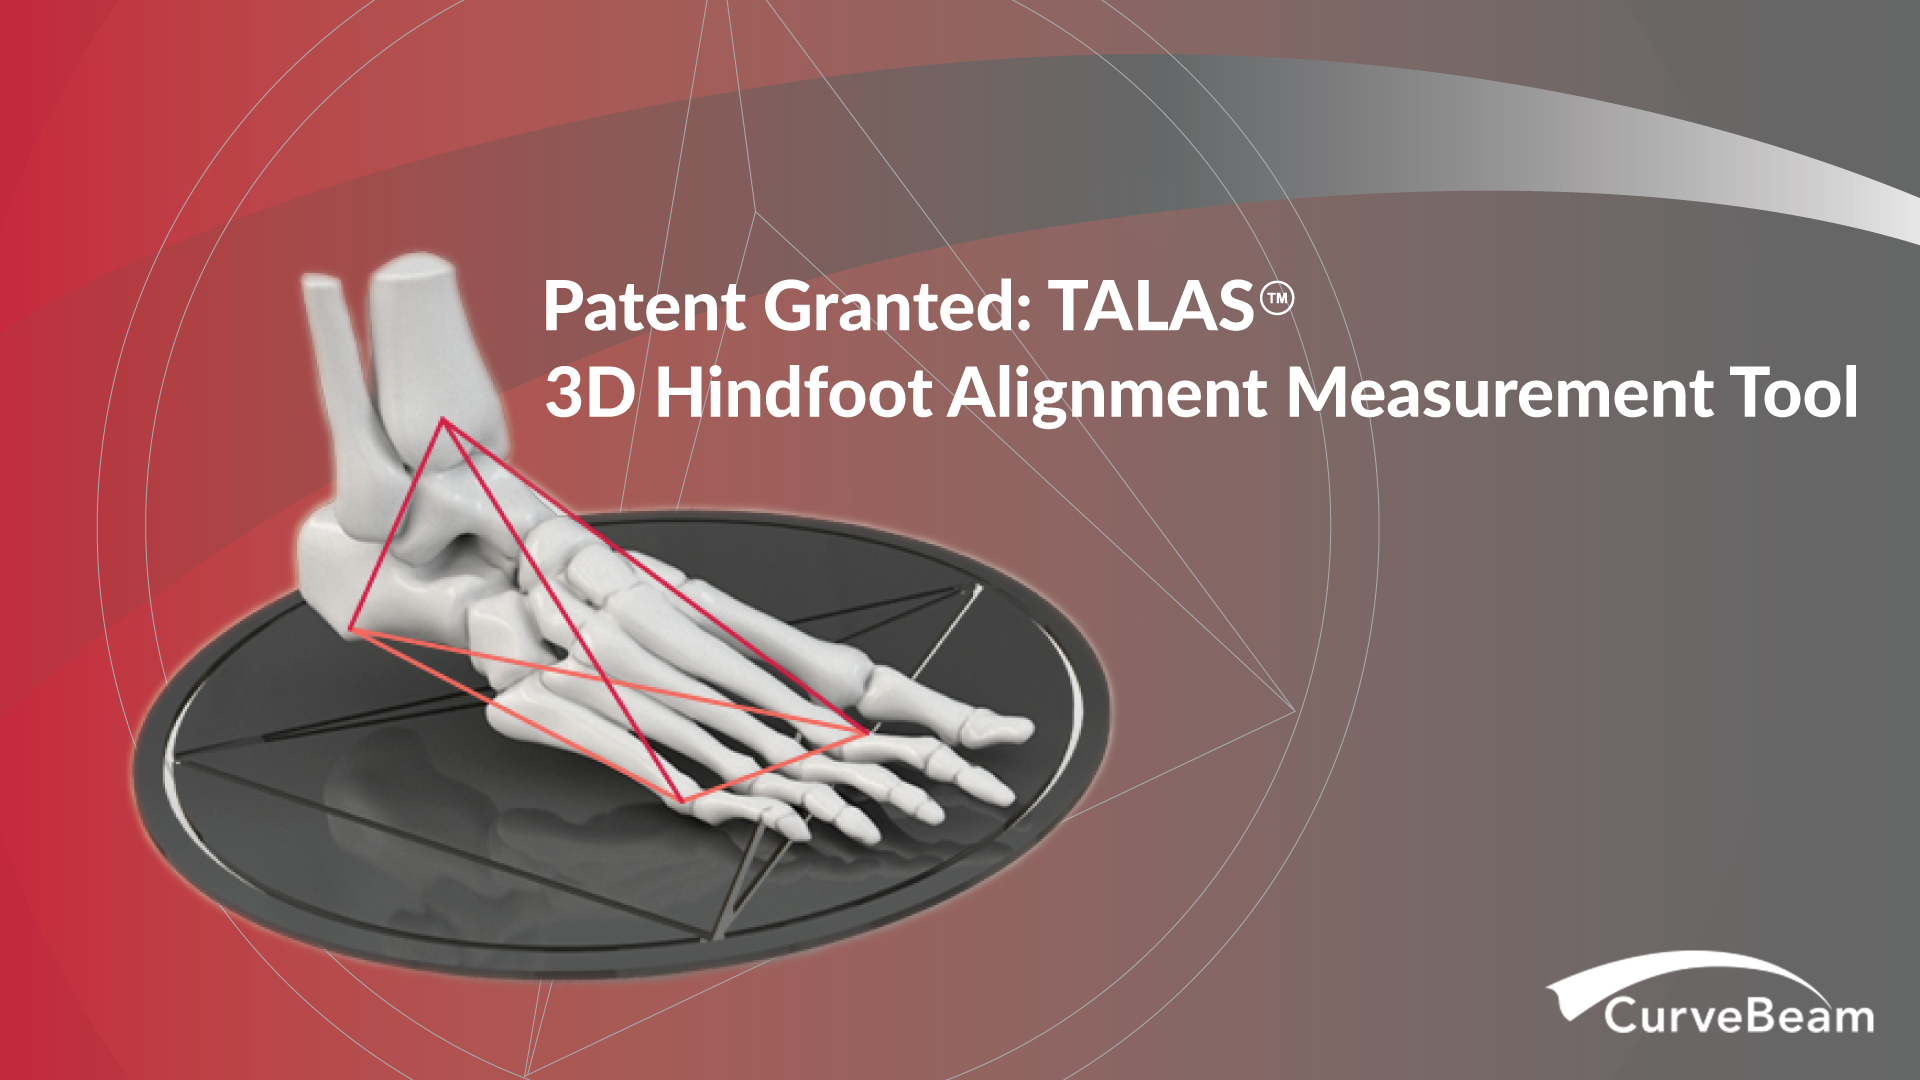 TALAS-3Dtool-Red (1)